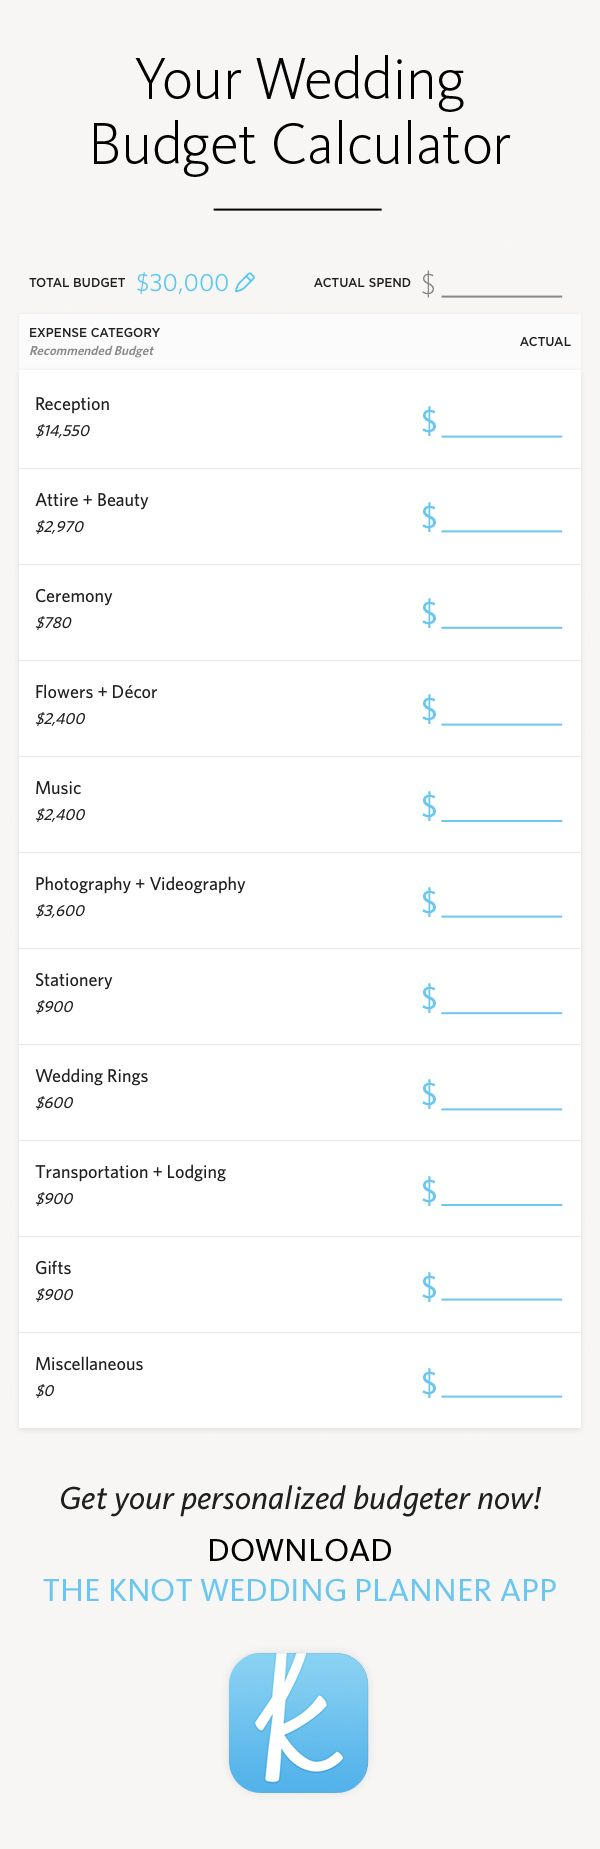 Your wedding budget calculator in The Knot's planner app -- what to spend, where to spend it, and personalized for you!